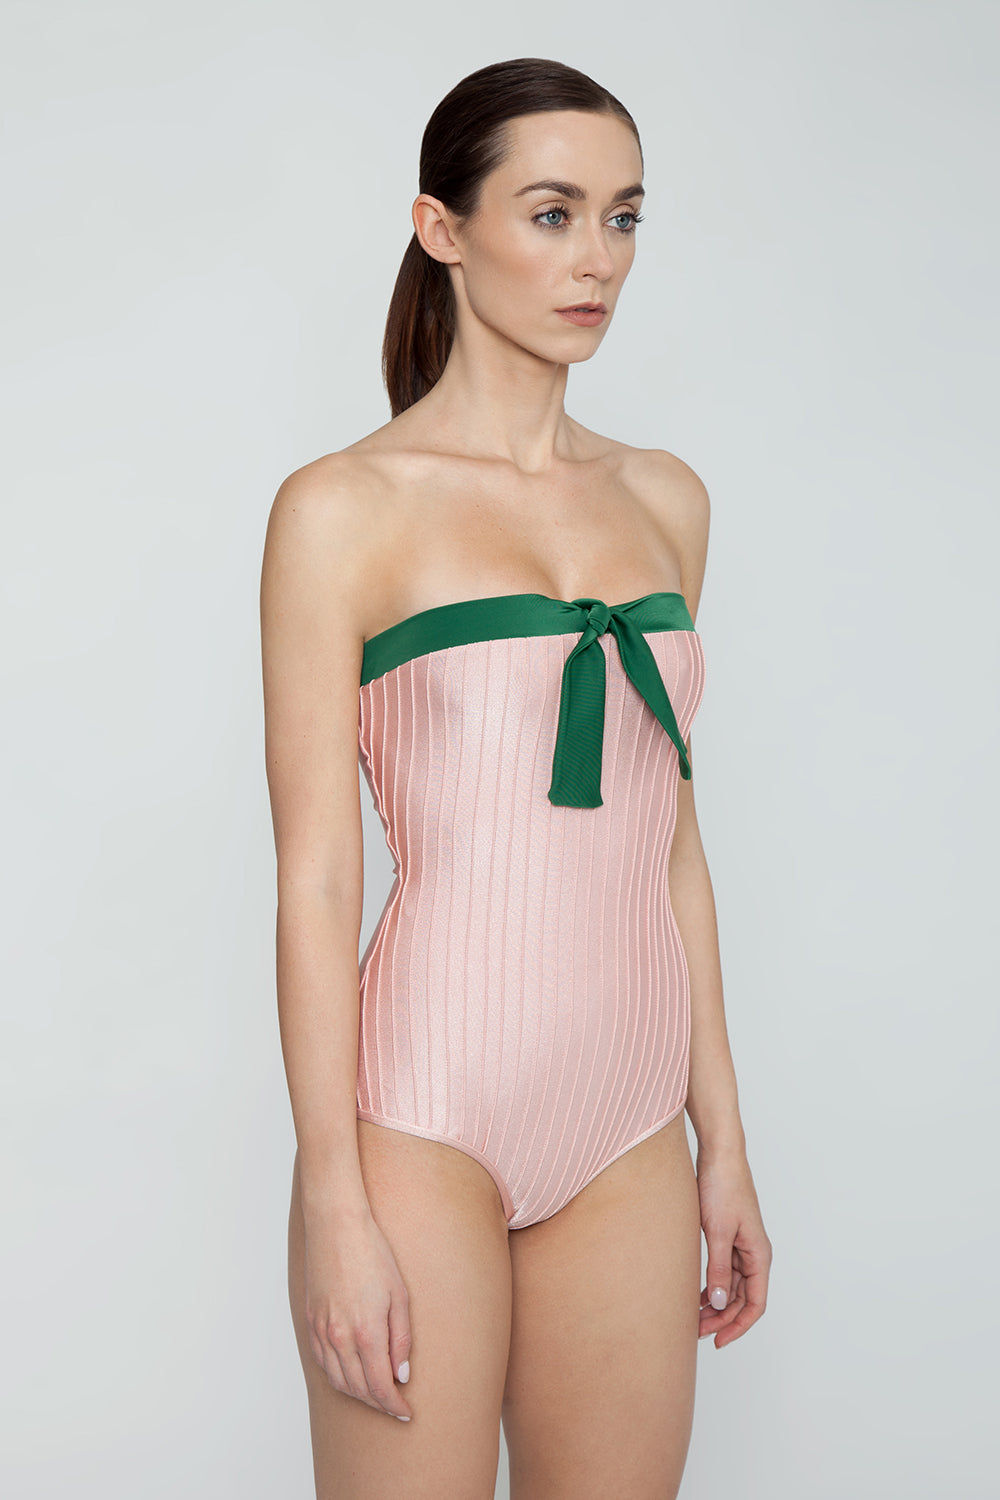 ADRIANA DEGREAS Strapless One Piece Swimsuit - Bicolor Light Pink/Emerald Green One Piece | Bicolor Light Pink/Emerald Green| Adriana Degreas Bicolor Strapless One Piece Swimsuit - Light Pink/Emerald Green. Features:  Strapless swimsuit with front knot detail. The strapless swimsuit is perfect for those who want to avoid tan lines. Main: 84% Polyamide 16% Spandex. Side View